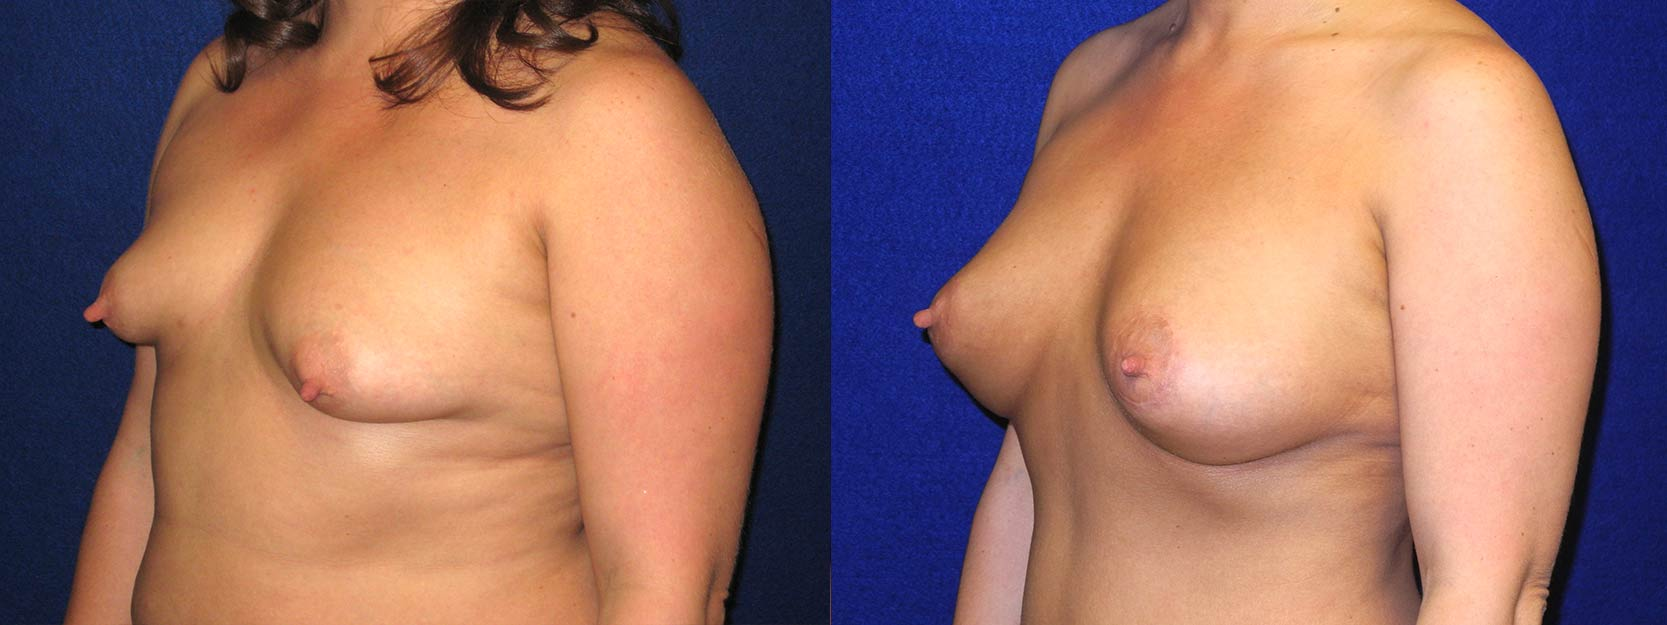 Left 3/4 View - Breast Augmentation with Periareolar Lift